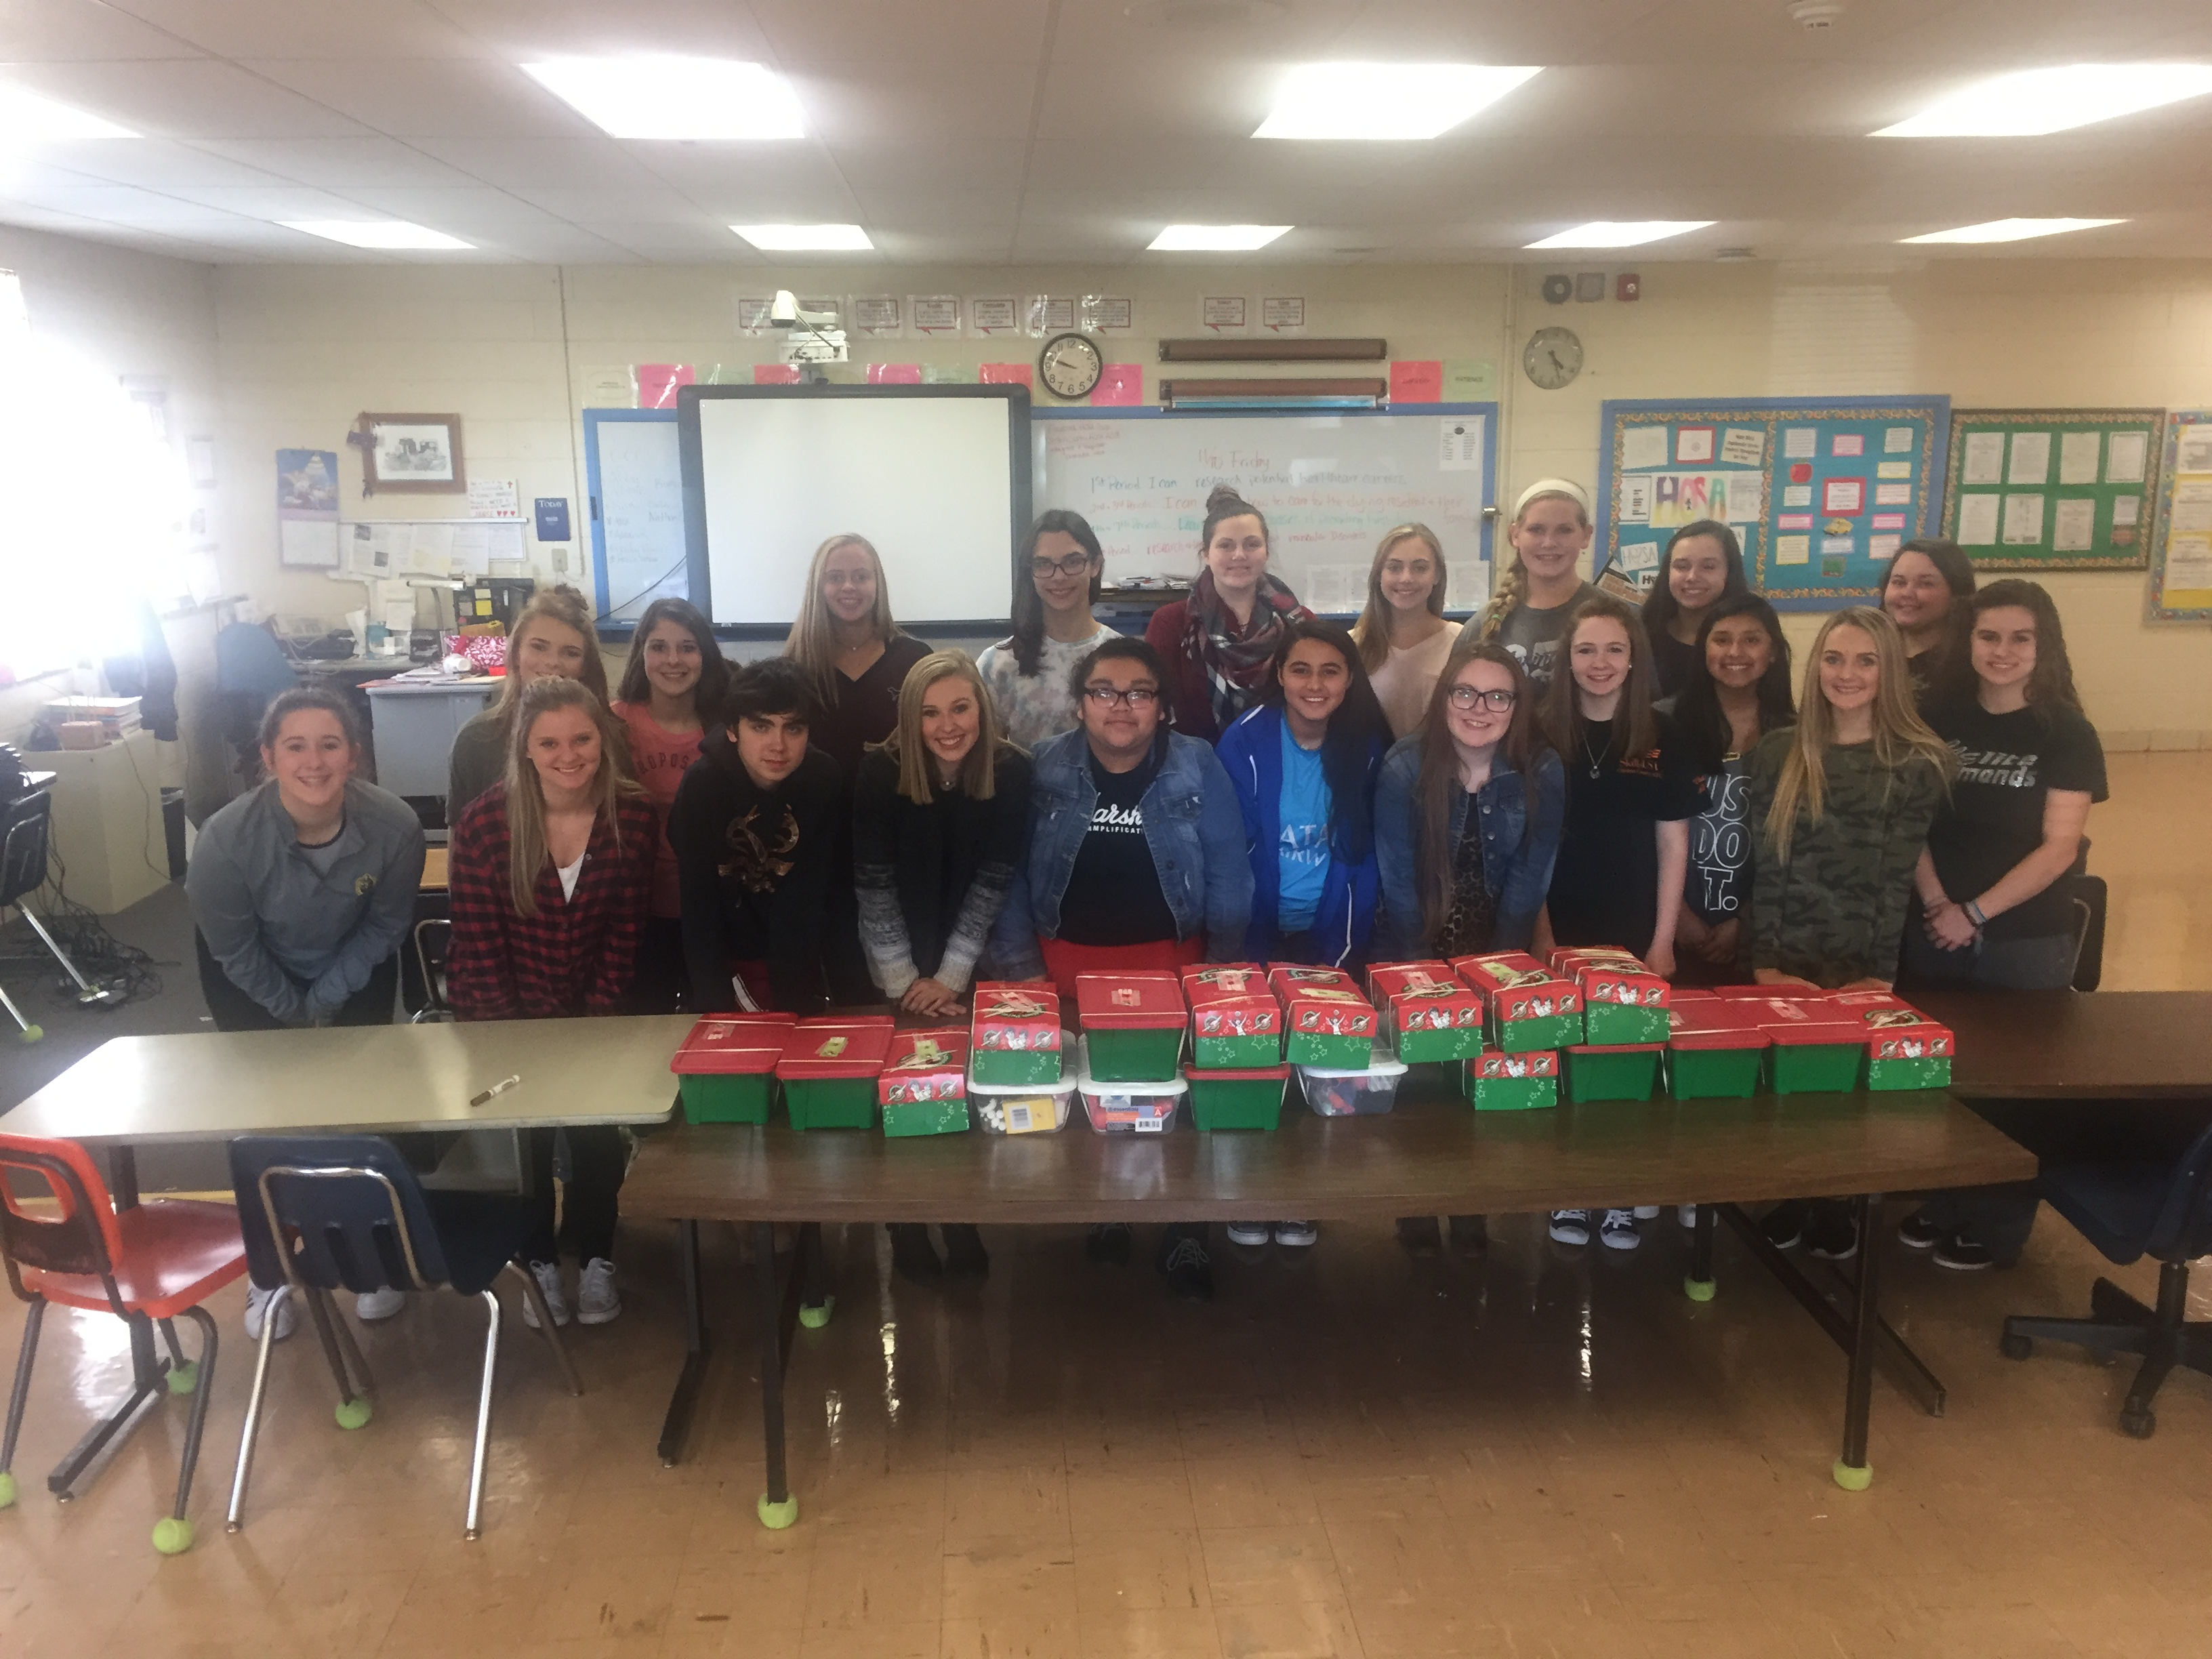 The HOSA students at Clinton County Area Technology Center collected items for Operation Christmas Child and packed 19 shoeboxes.